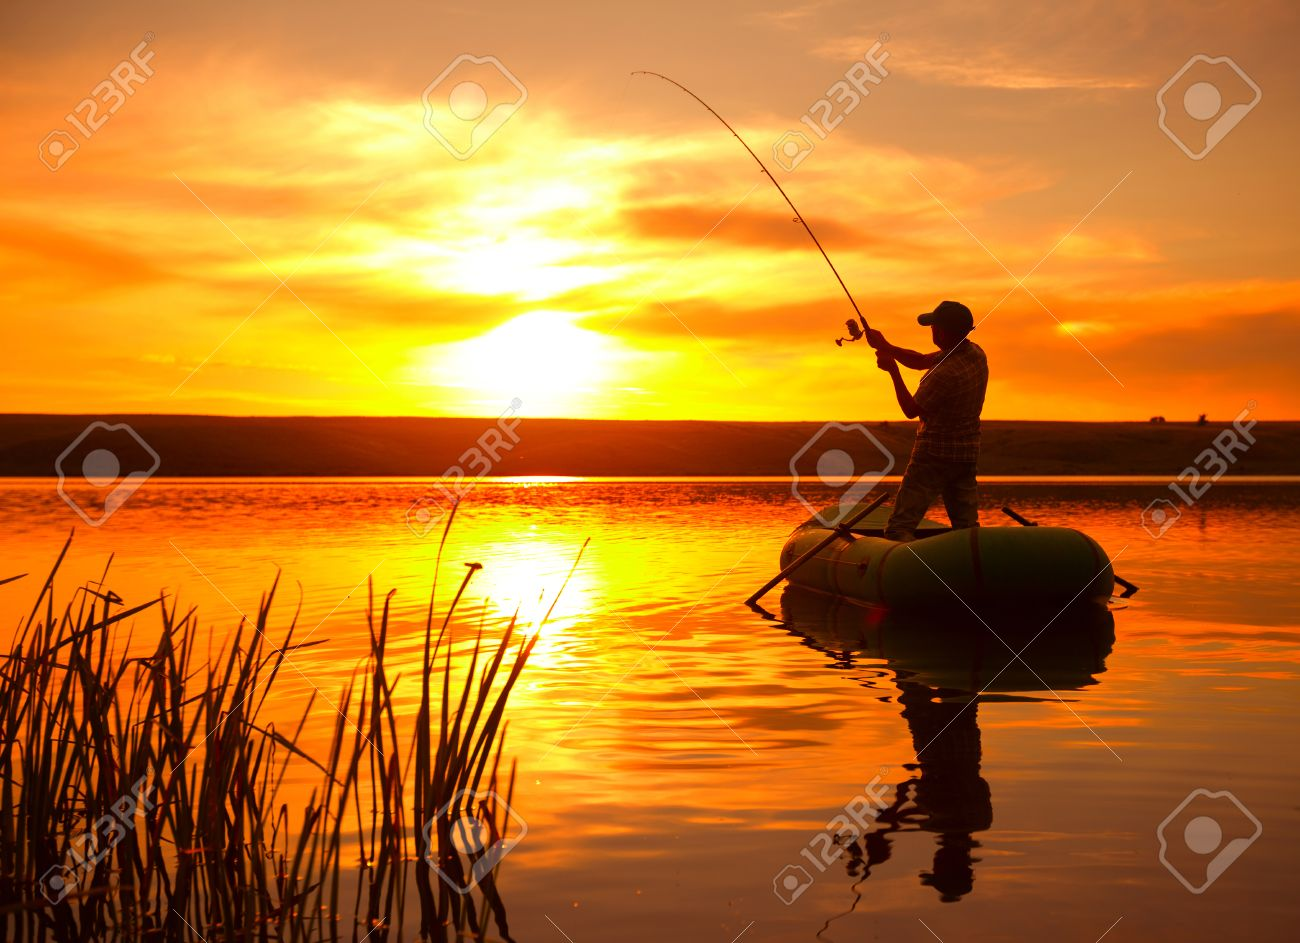 Mature man fishing from the boat on the pond at sunset - 31259752